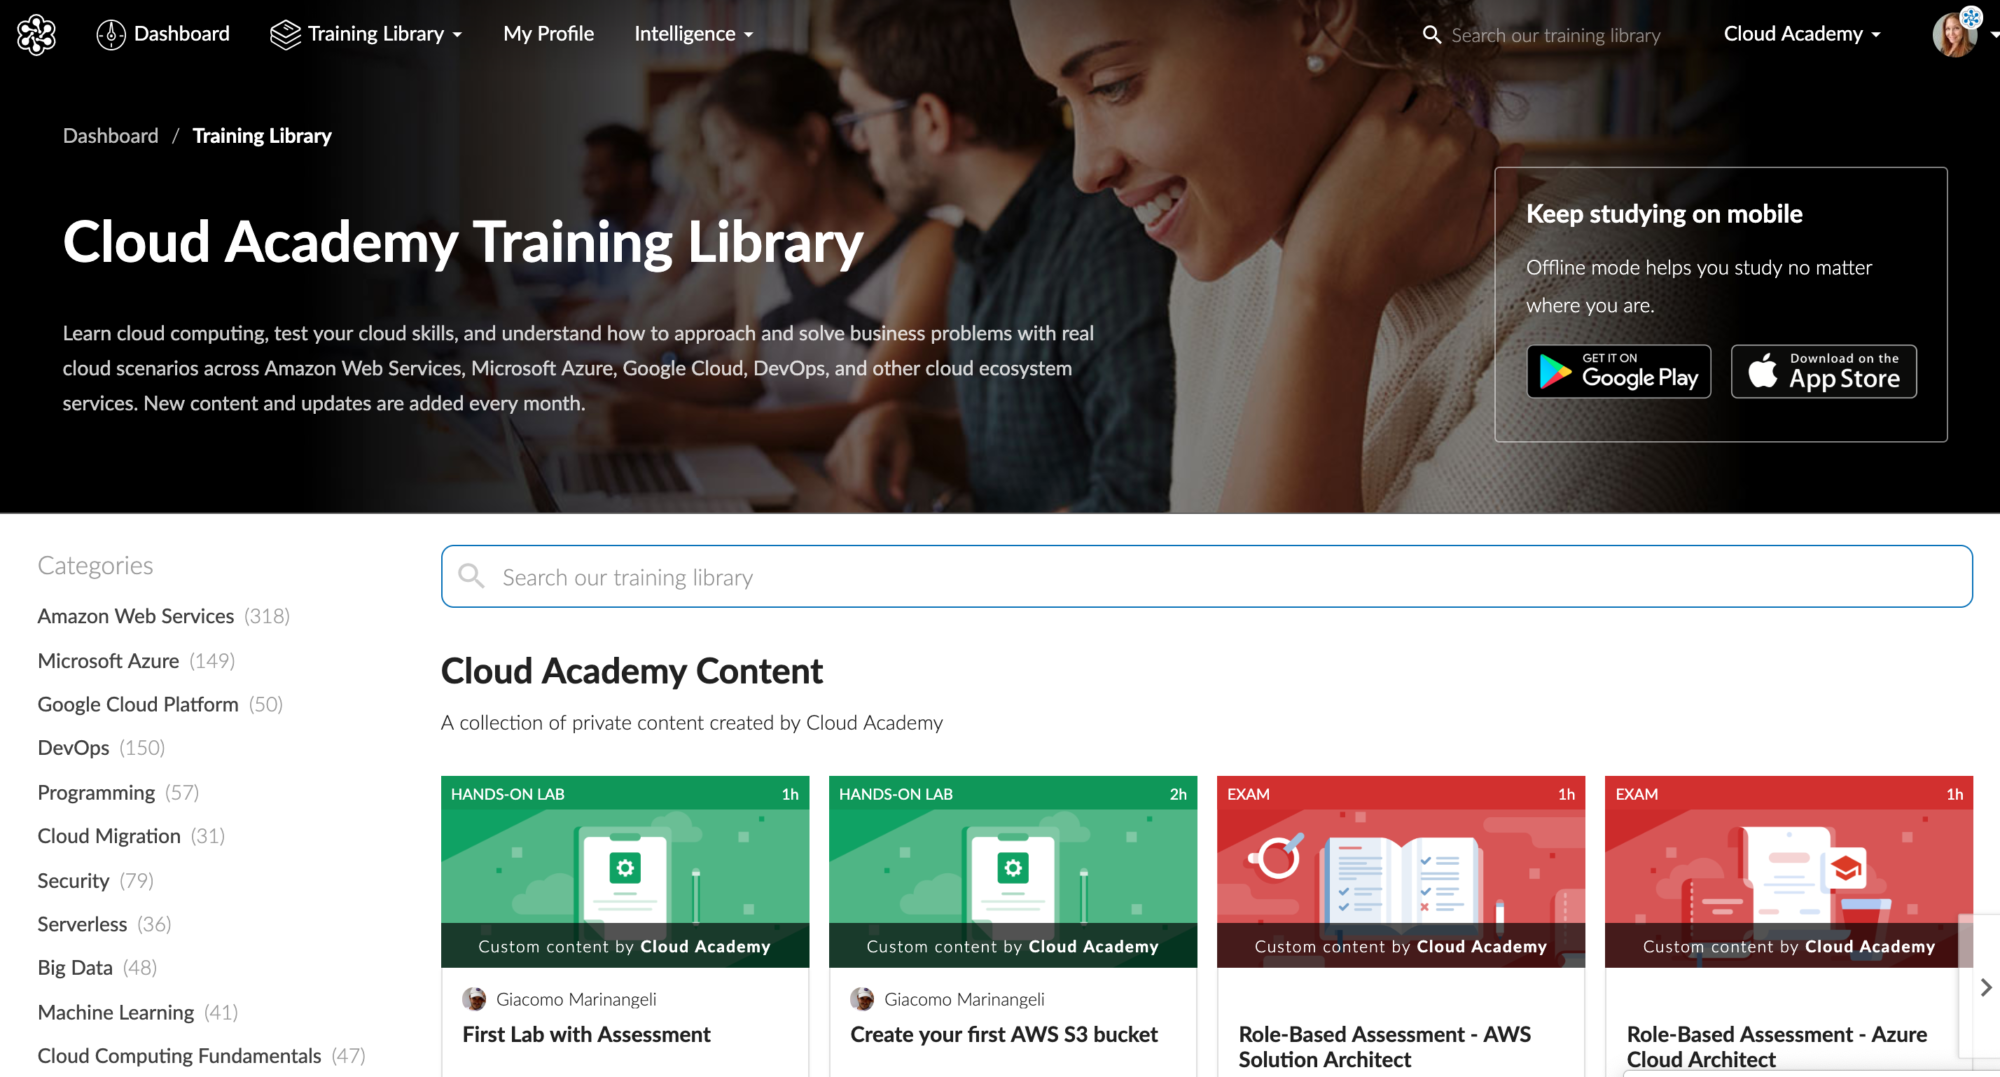 Cloud Academy Training Library